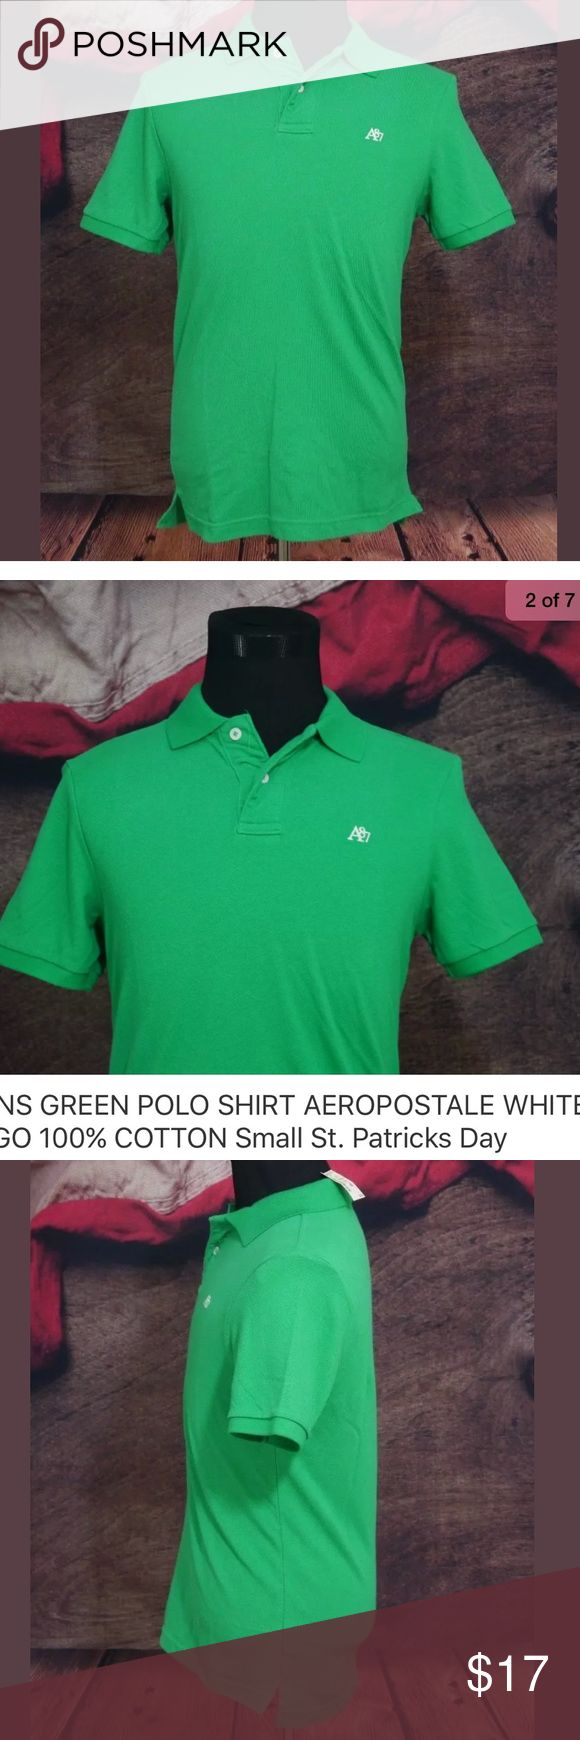 """GREEN POLO SHIRT AEROPOSTALE S St. Patricks Day New With Tags MENS GREEN POLO SHIRT AEROPOSTALE WHITE LOGO 100% COTTON Small St. Patricks Day    Size: Small  Color: Green  Material: 100% Cotton  Measurements: Bust: 19.5"""" / Sleeve: 9"""" / Length: 28"""" Aeropostale Shirts Polos"""